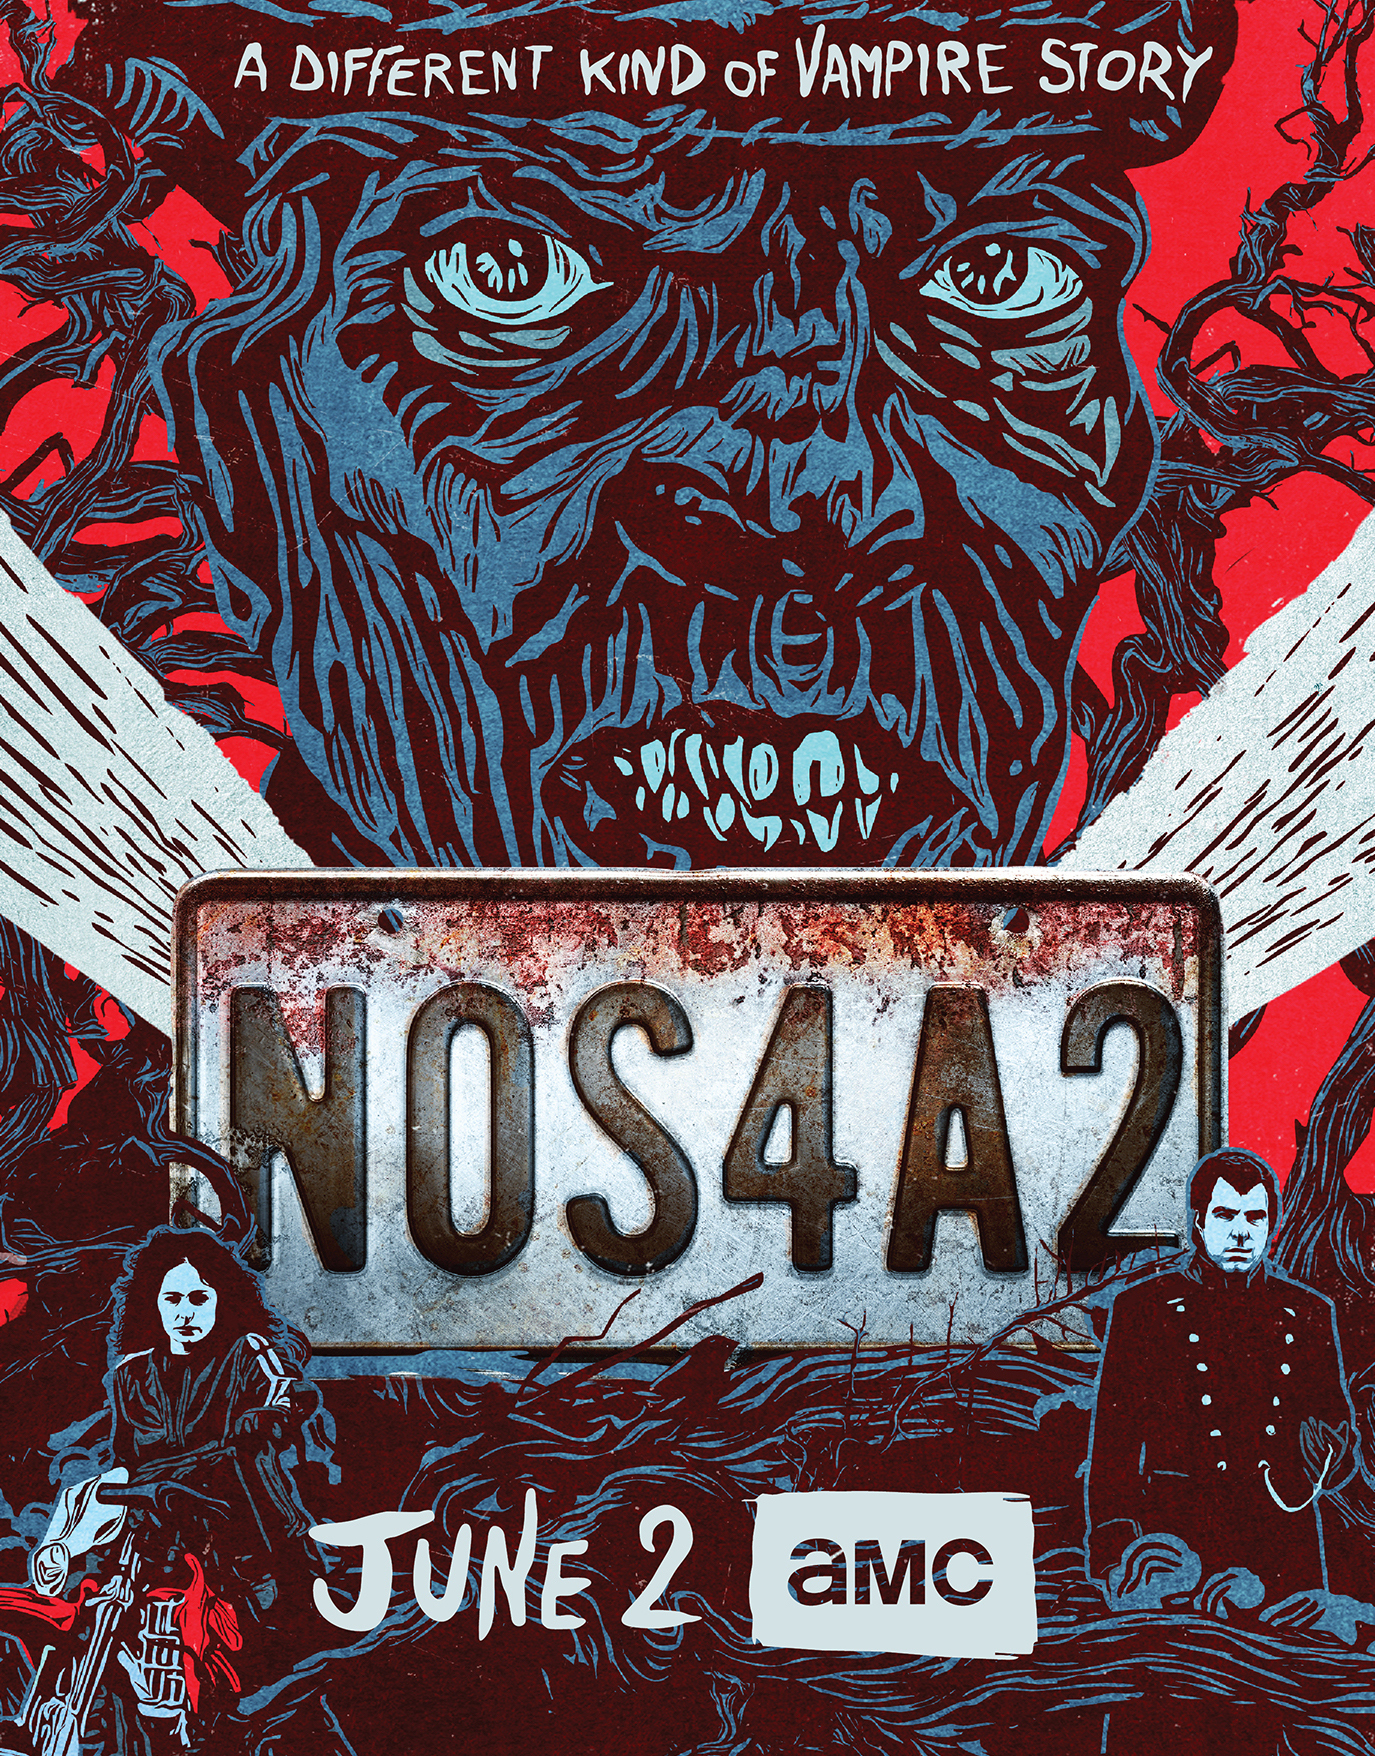 AMC's Poster for 'NOS4A2'